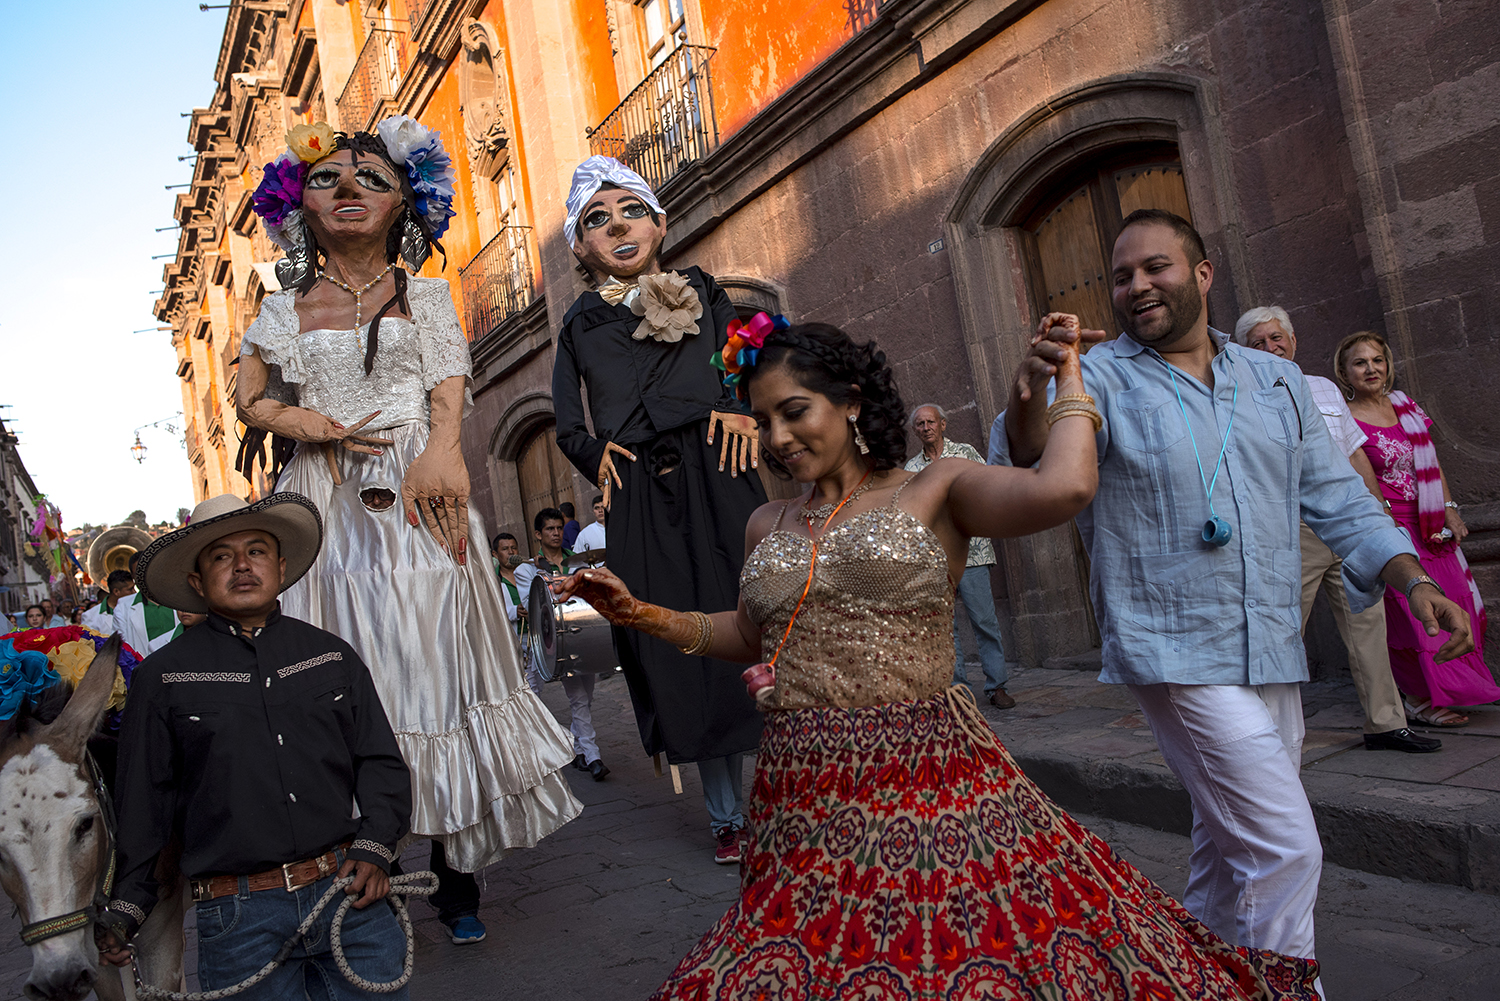 indian_wedding_san_miguel_de_allende_chio_garcia_photographer (12).jpg